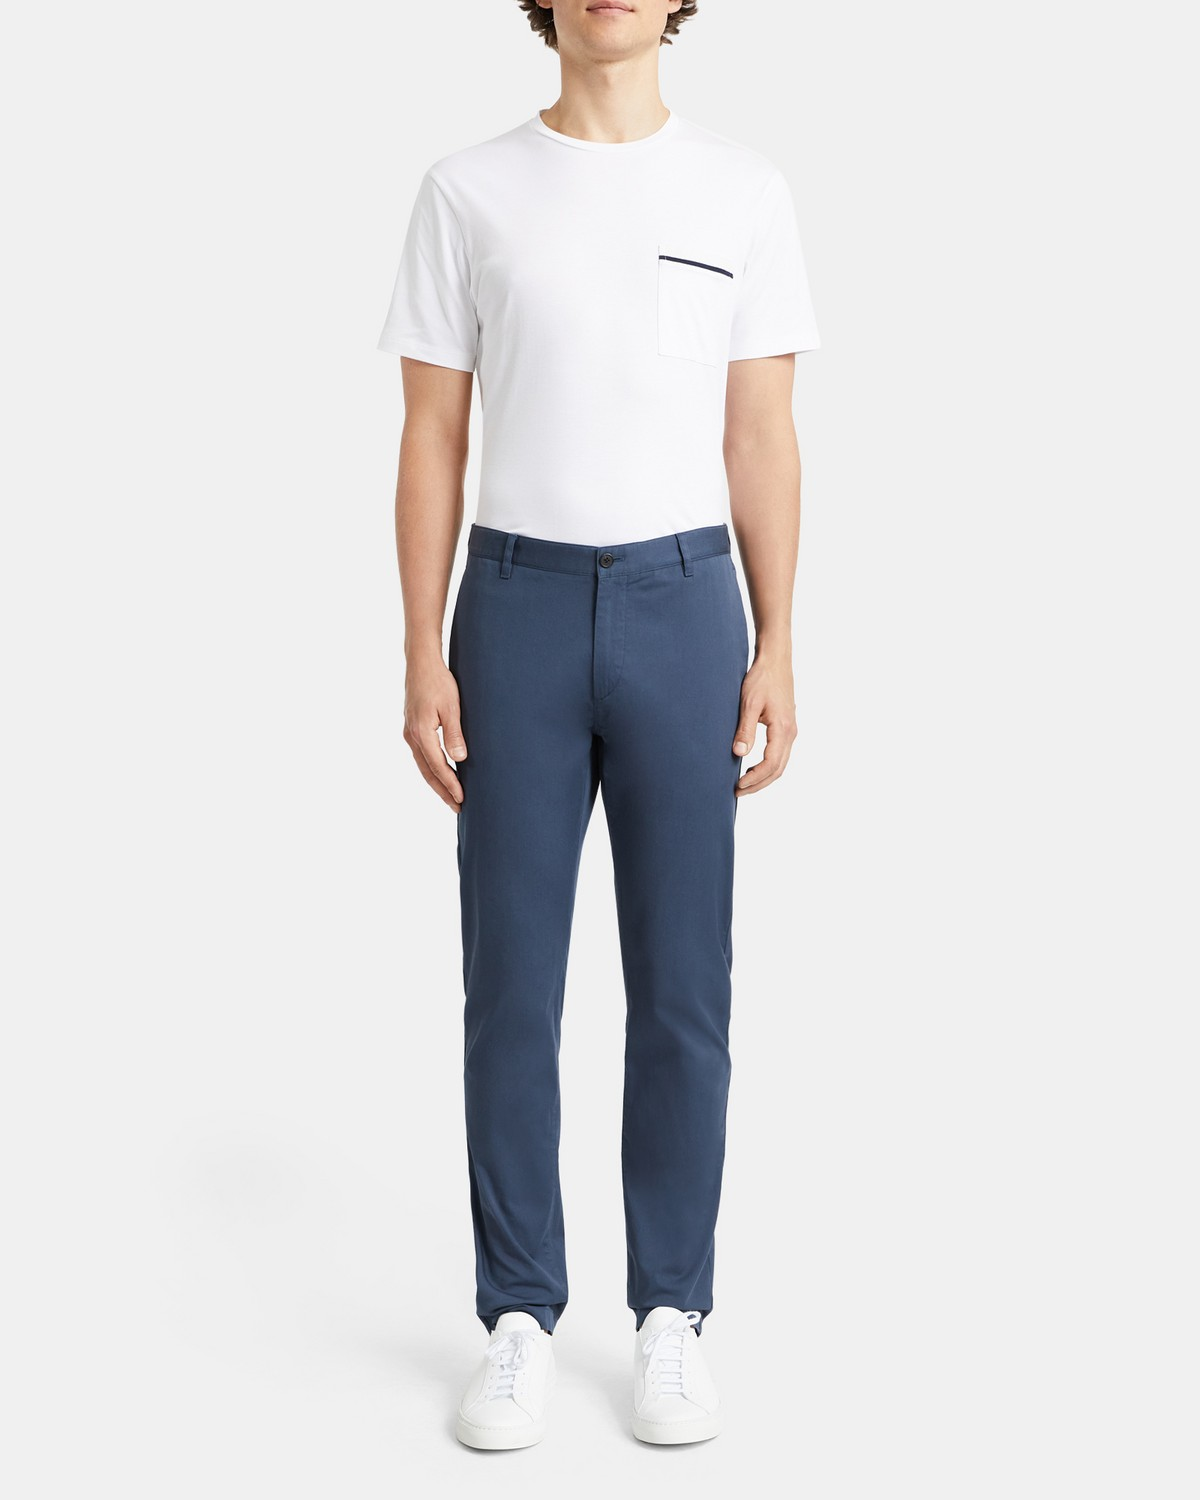 Classic-Fit Pant in Stretch Cotton Twill